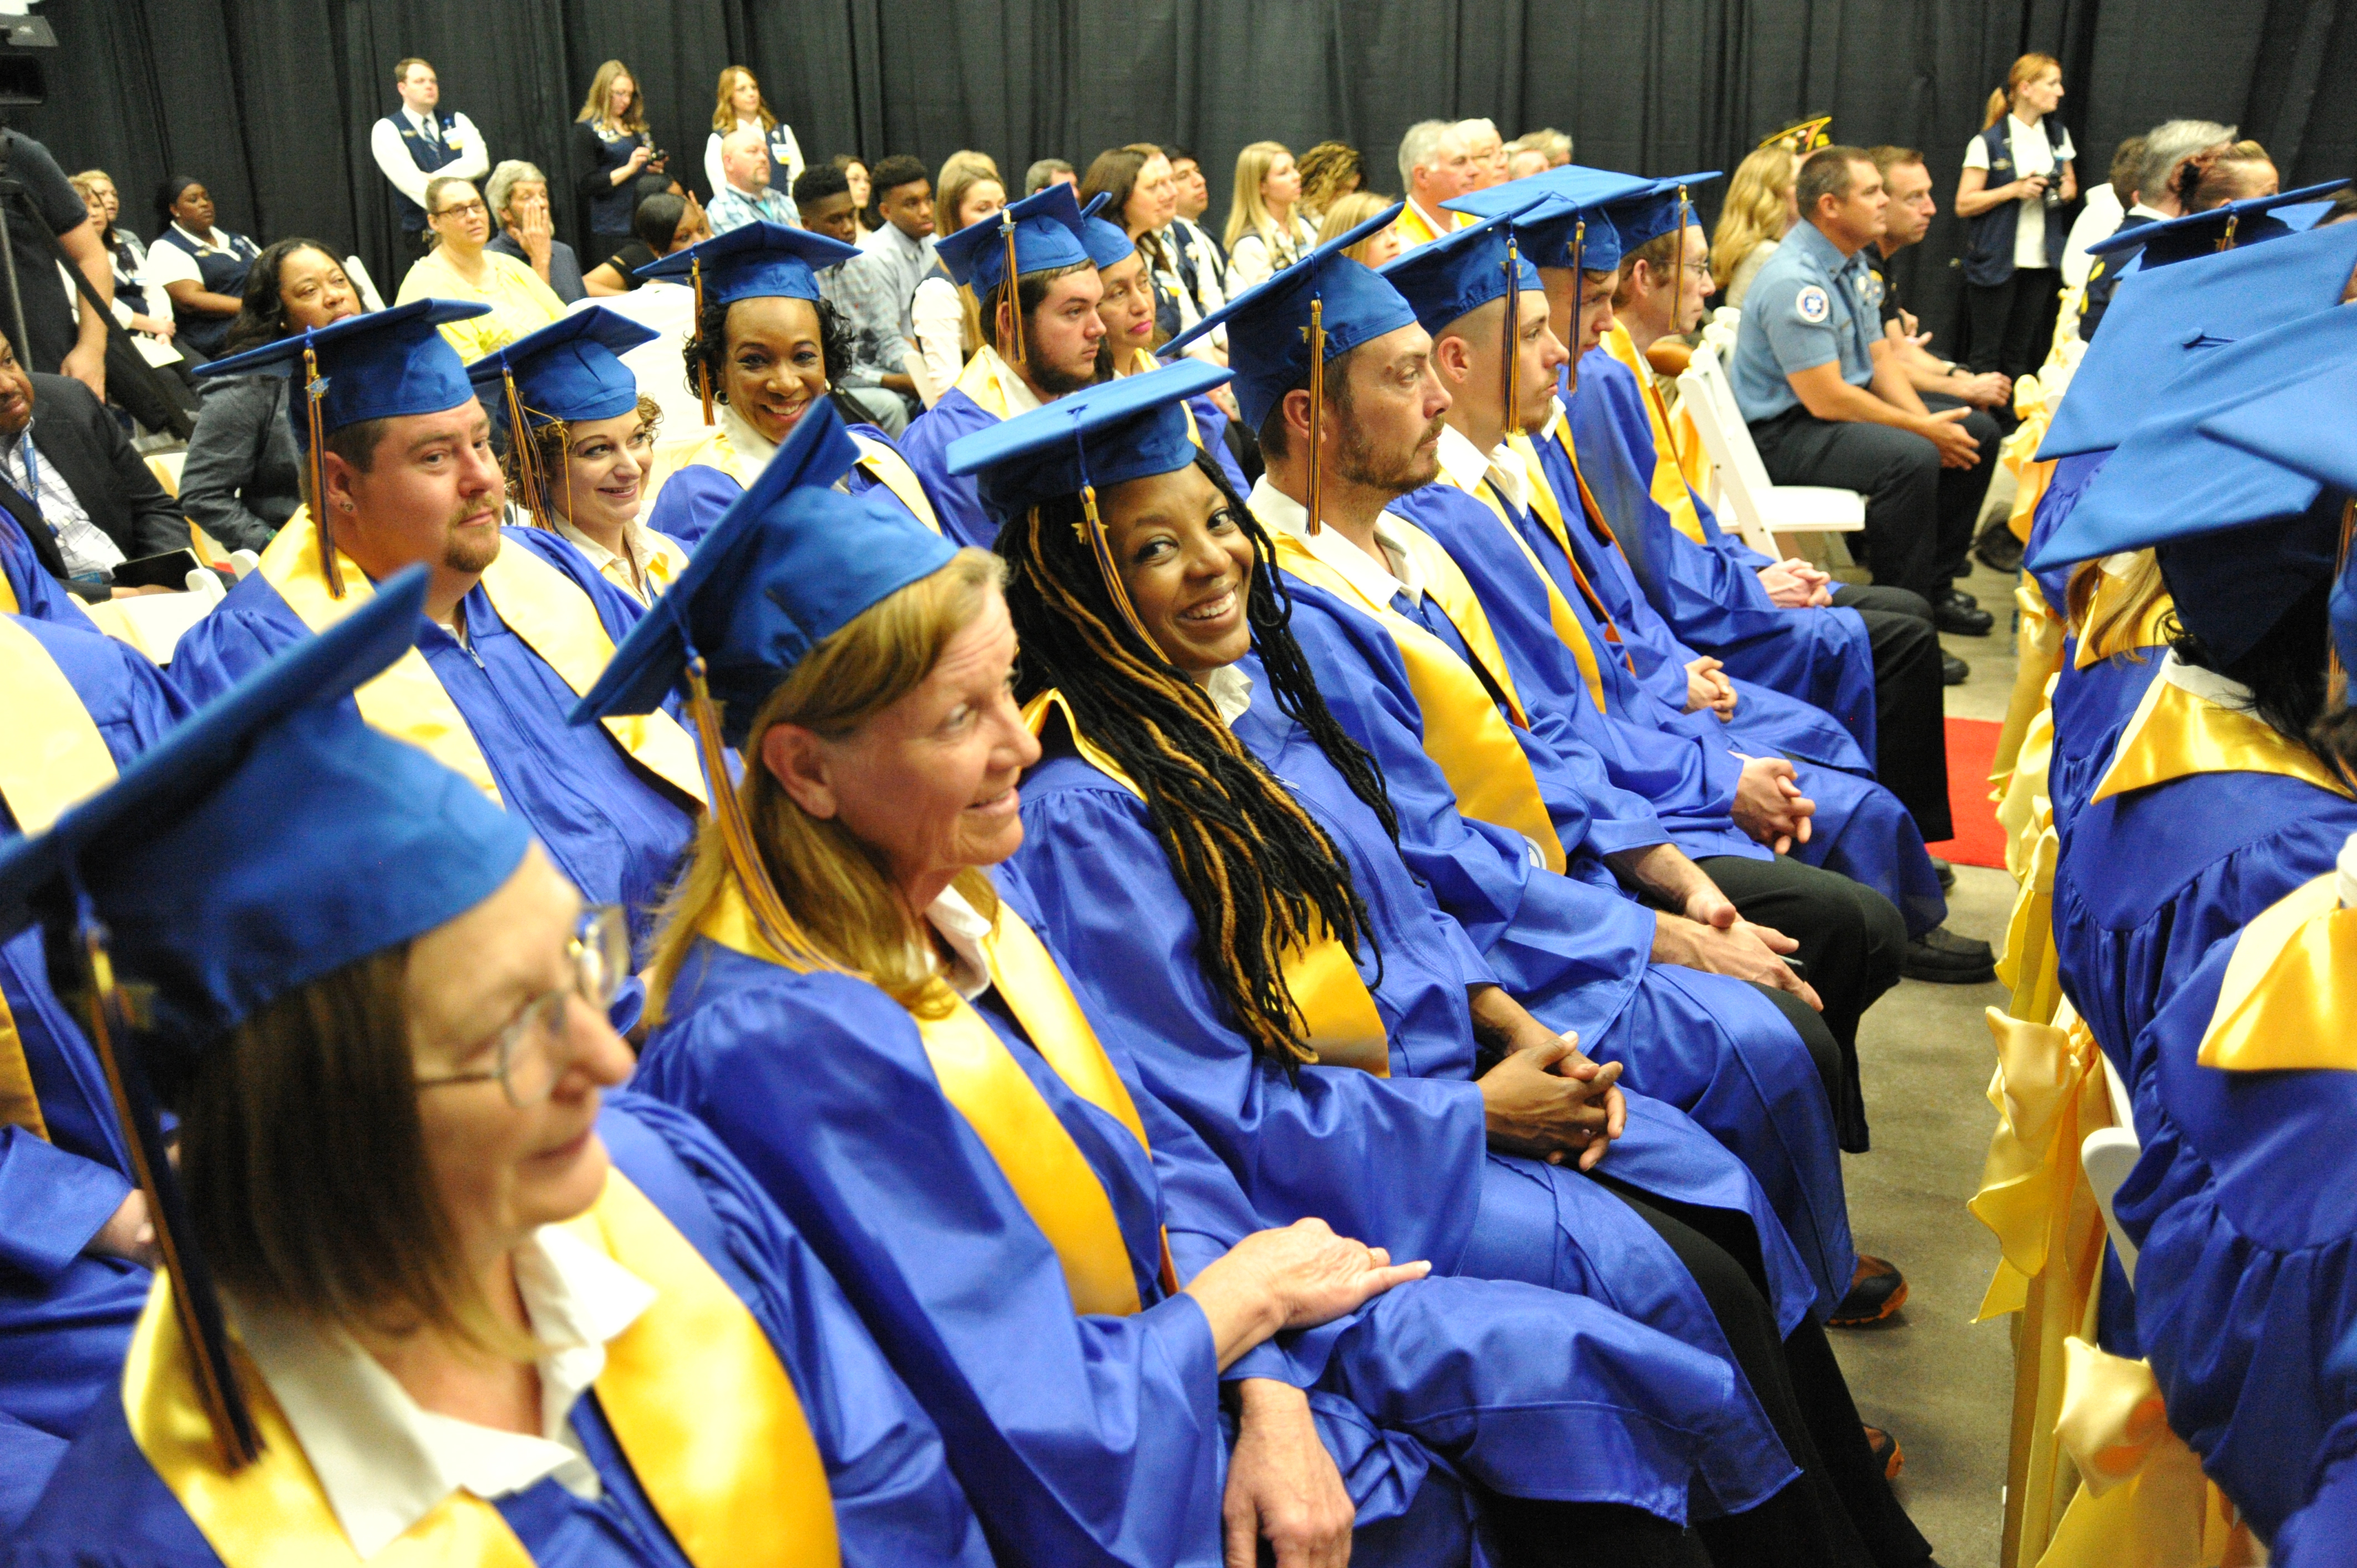 Walmarts New Education Benefit Puts Cap And Gown Within Reach For